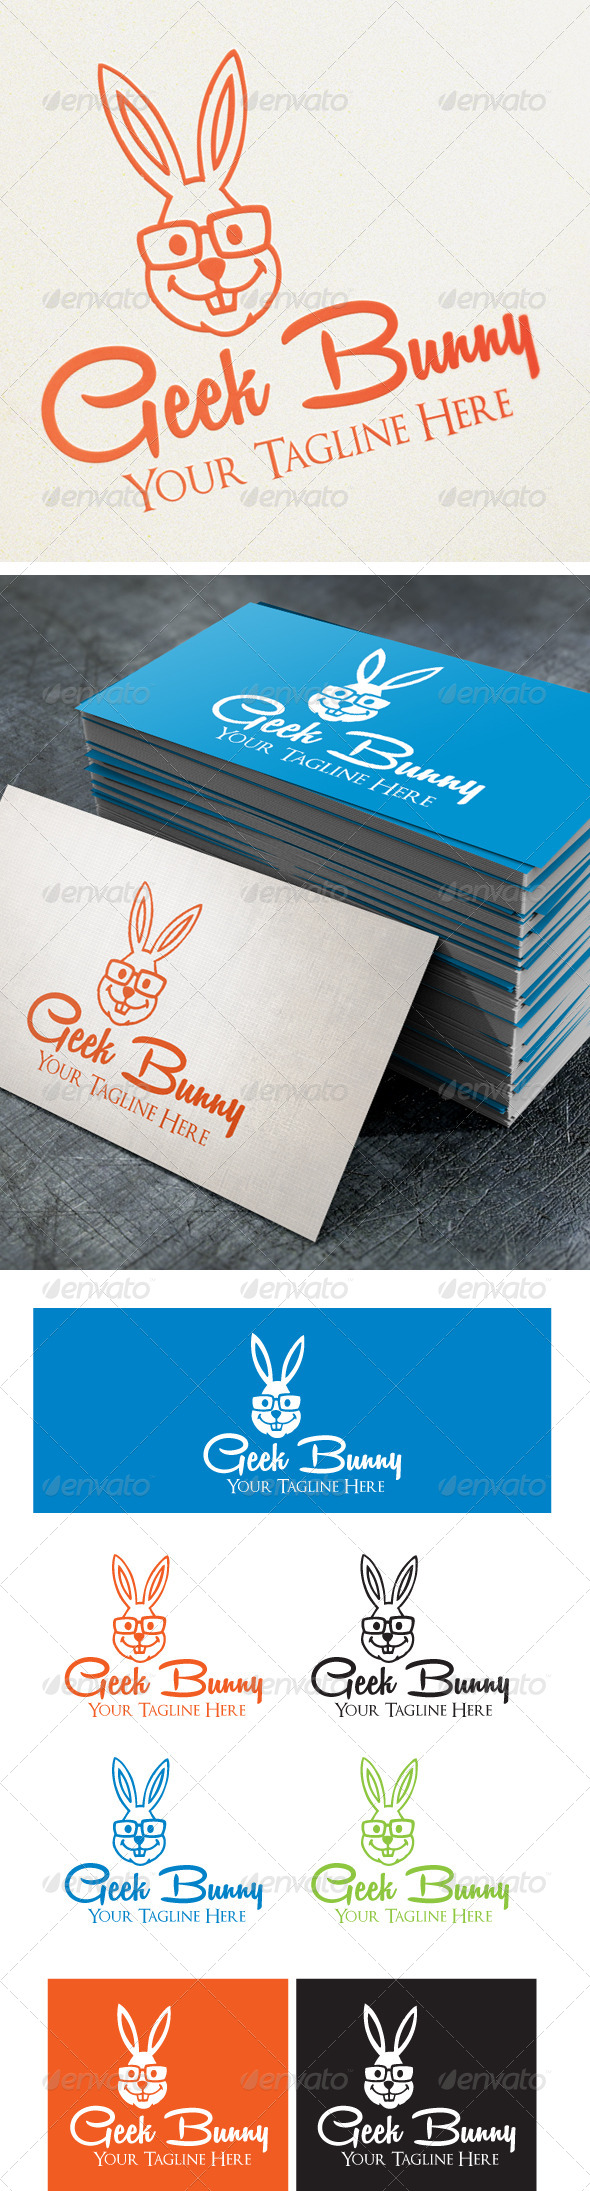 GraphicRiver Geek Bunny 4569684